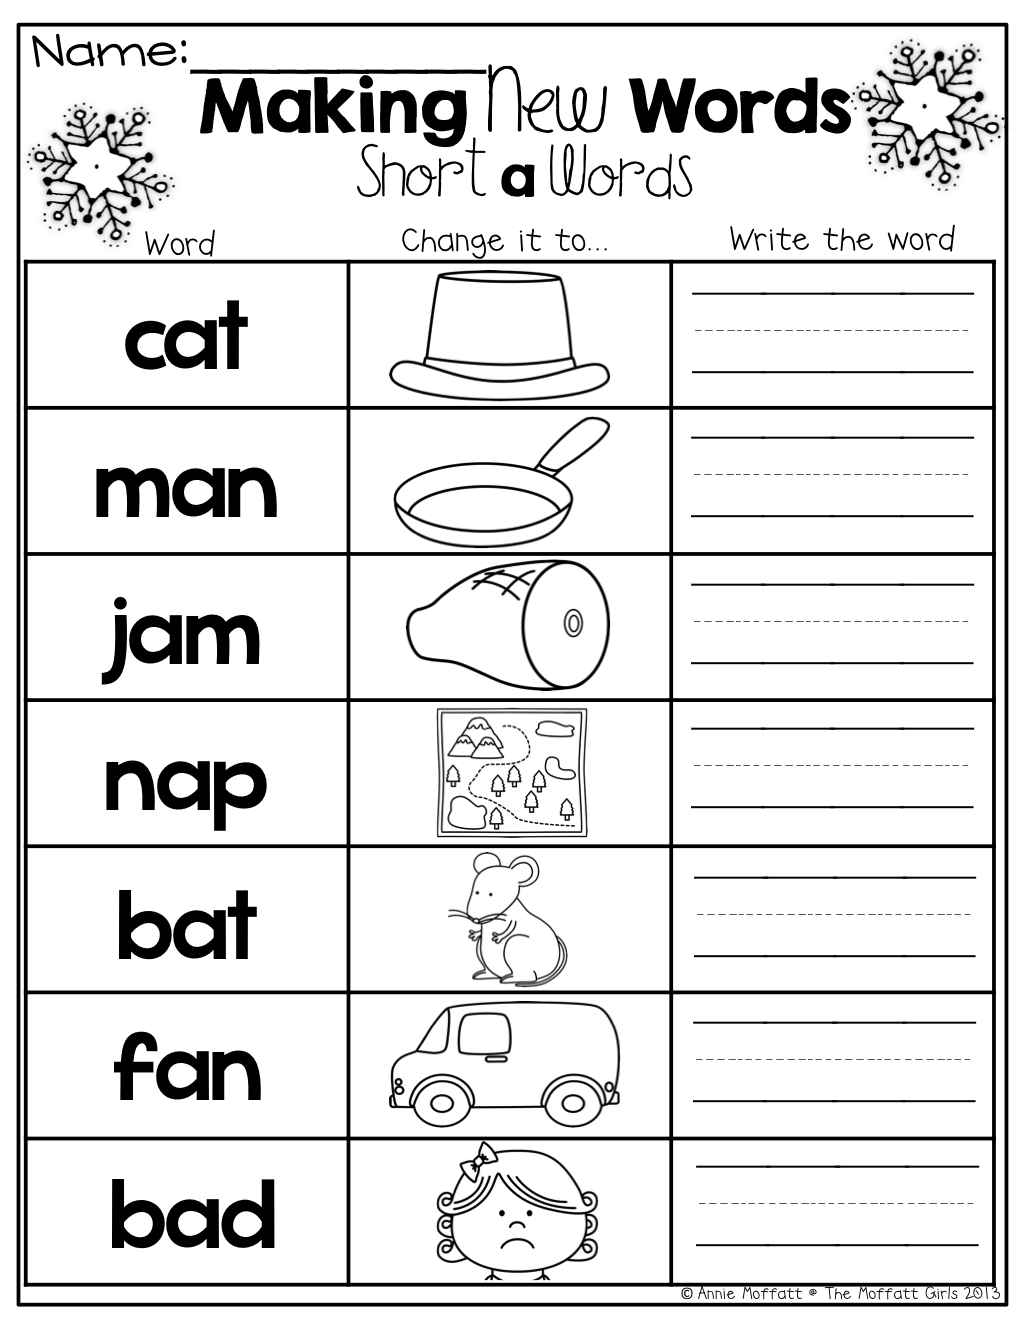 worksheet Cut And Paste Beginning Sounds Worksheets make new words by changing the beginning sound skool dayz sound